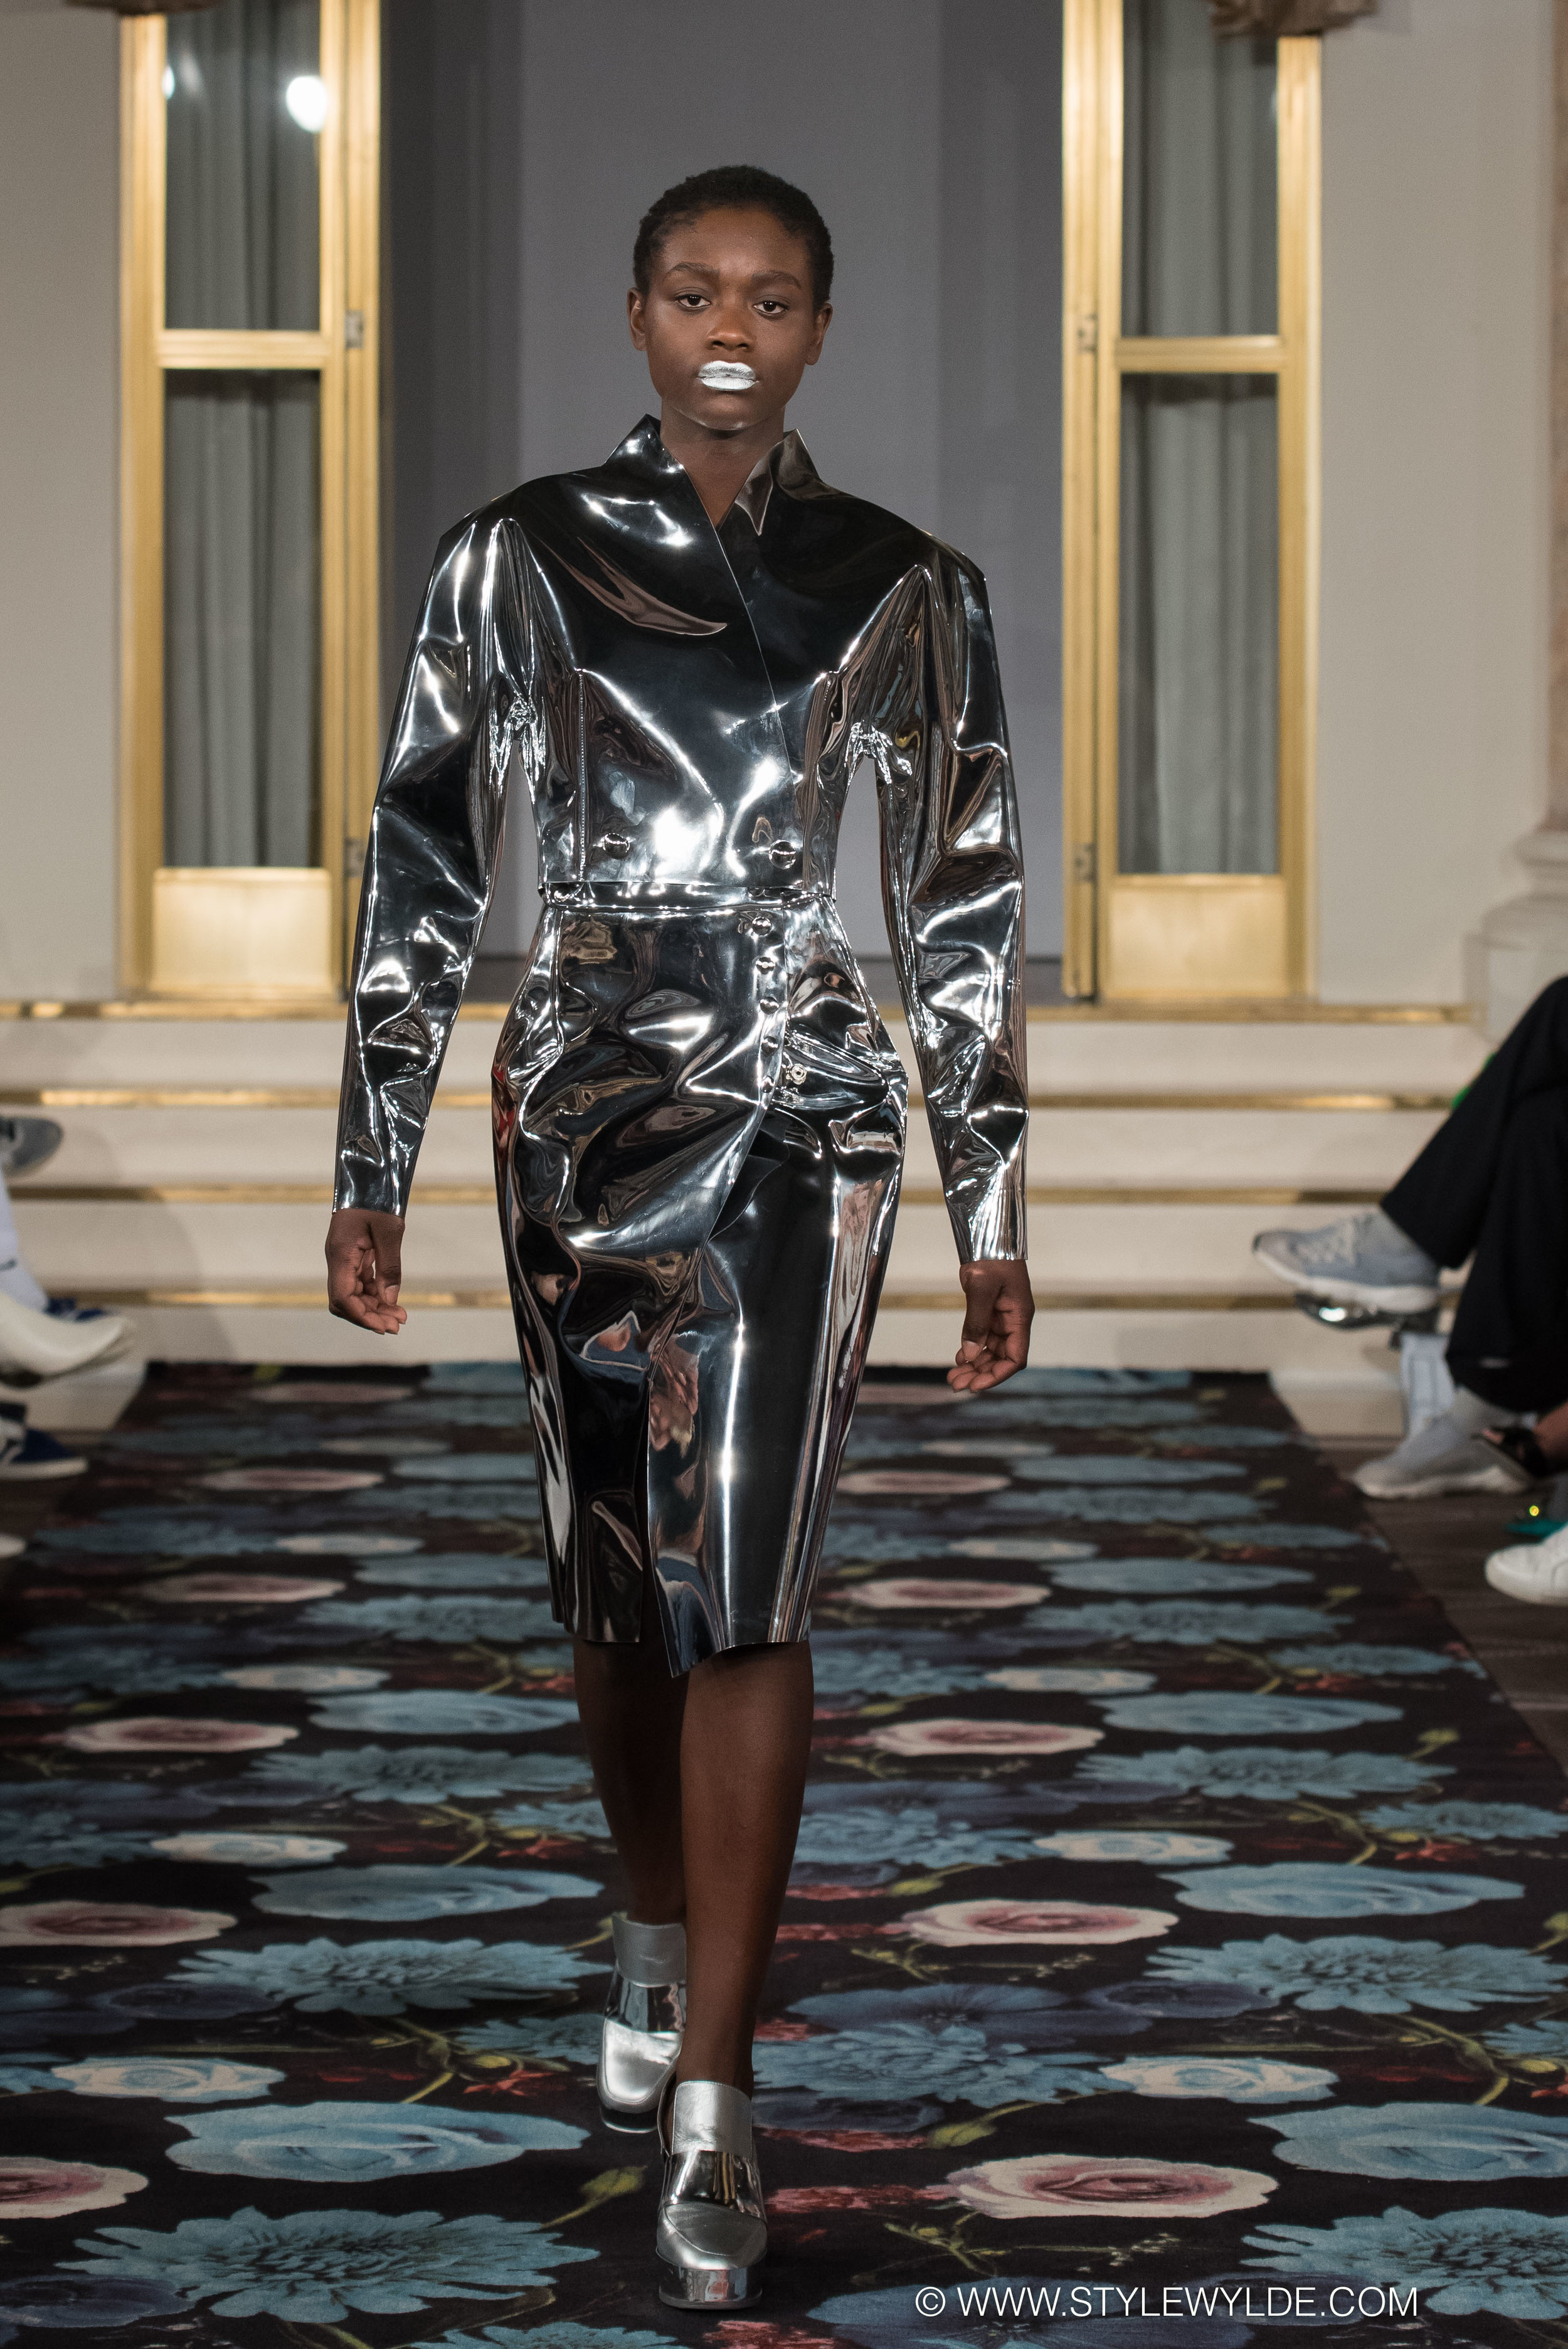 Techno baby - Hi-tech fabrics and futuristic silhouettes made for a fantastic collection of space age looks at the Morten Ussing Fall 2018 show.